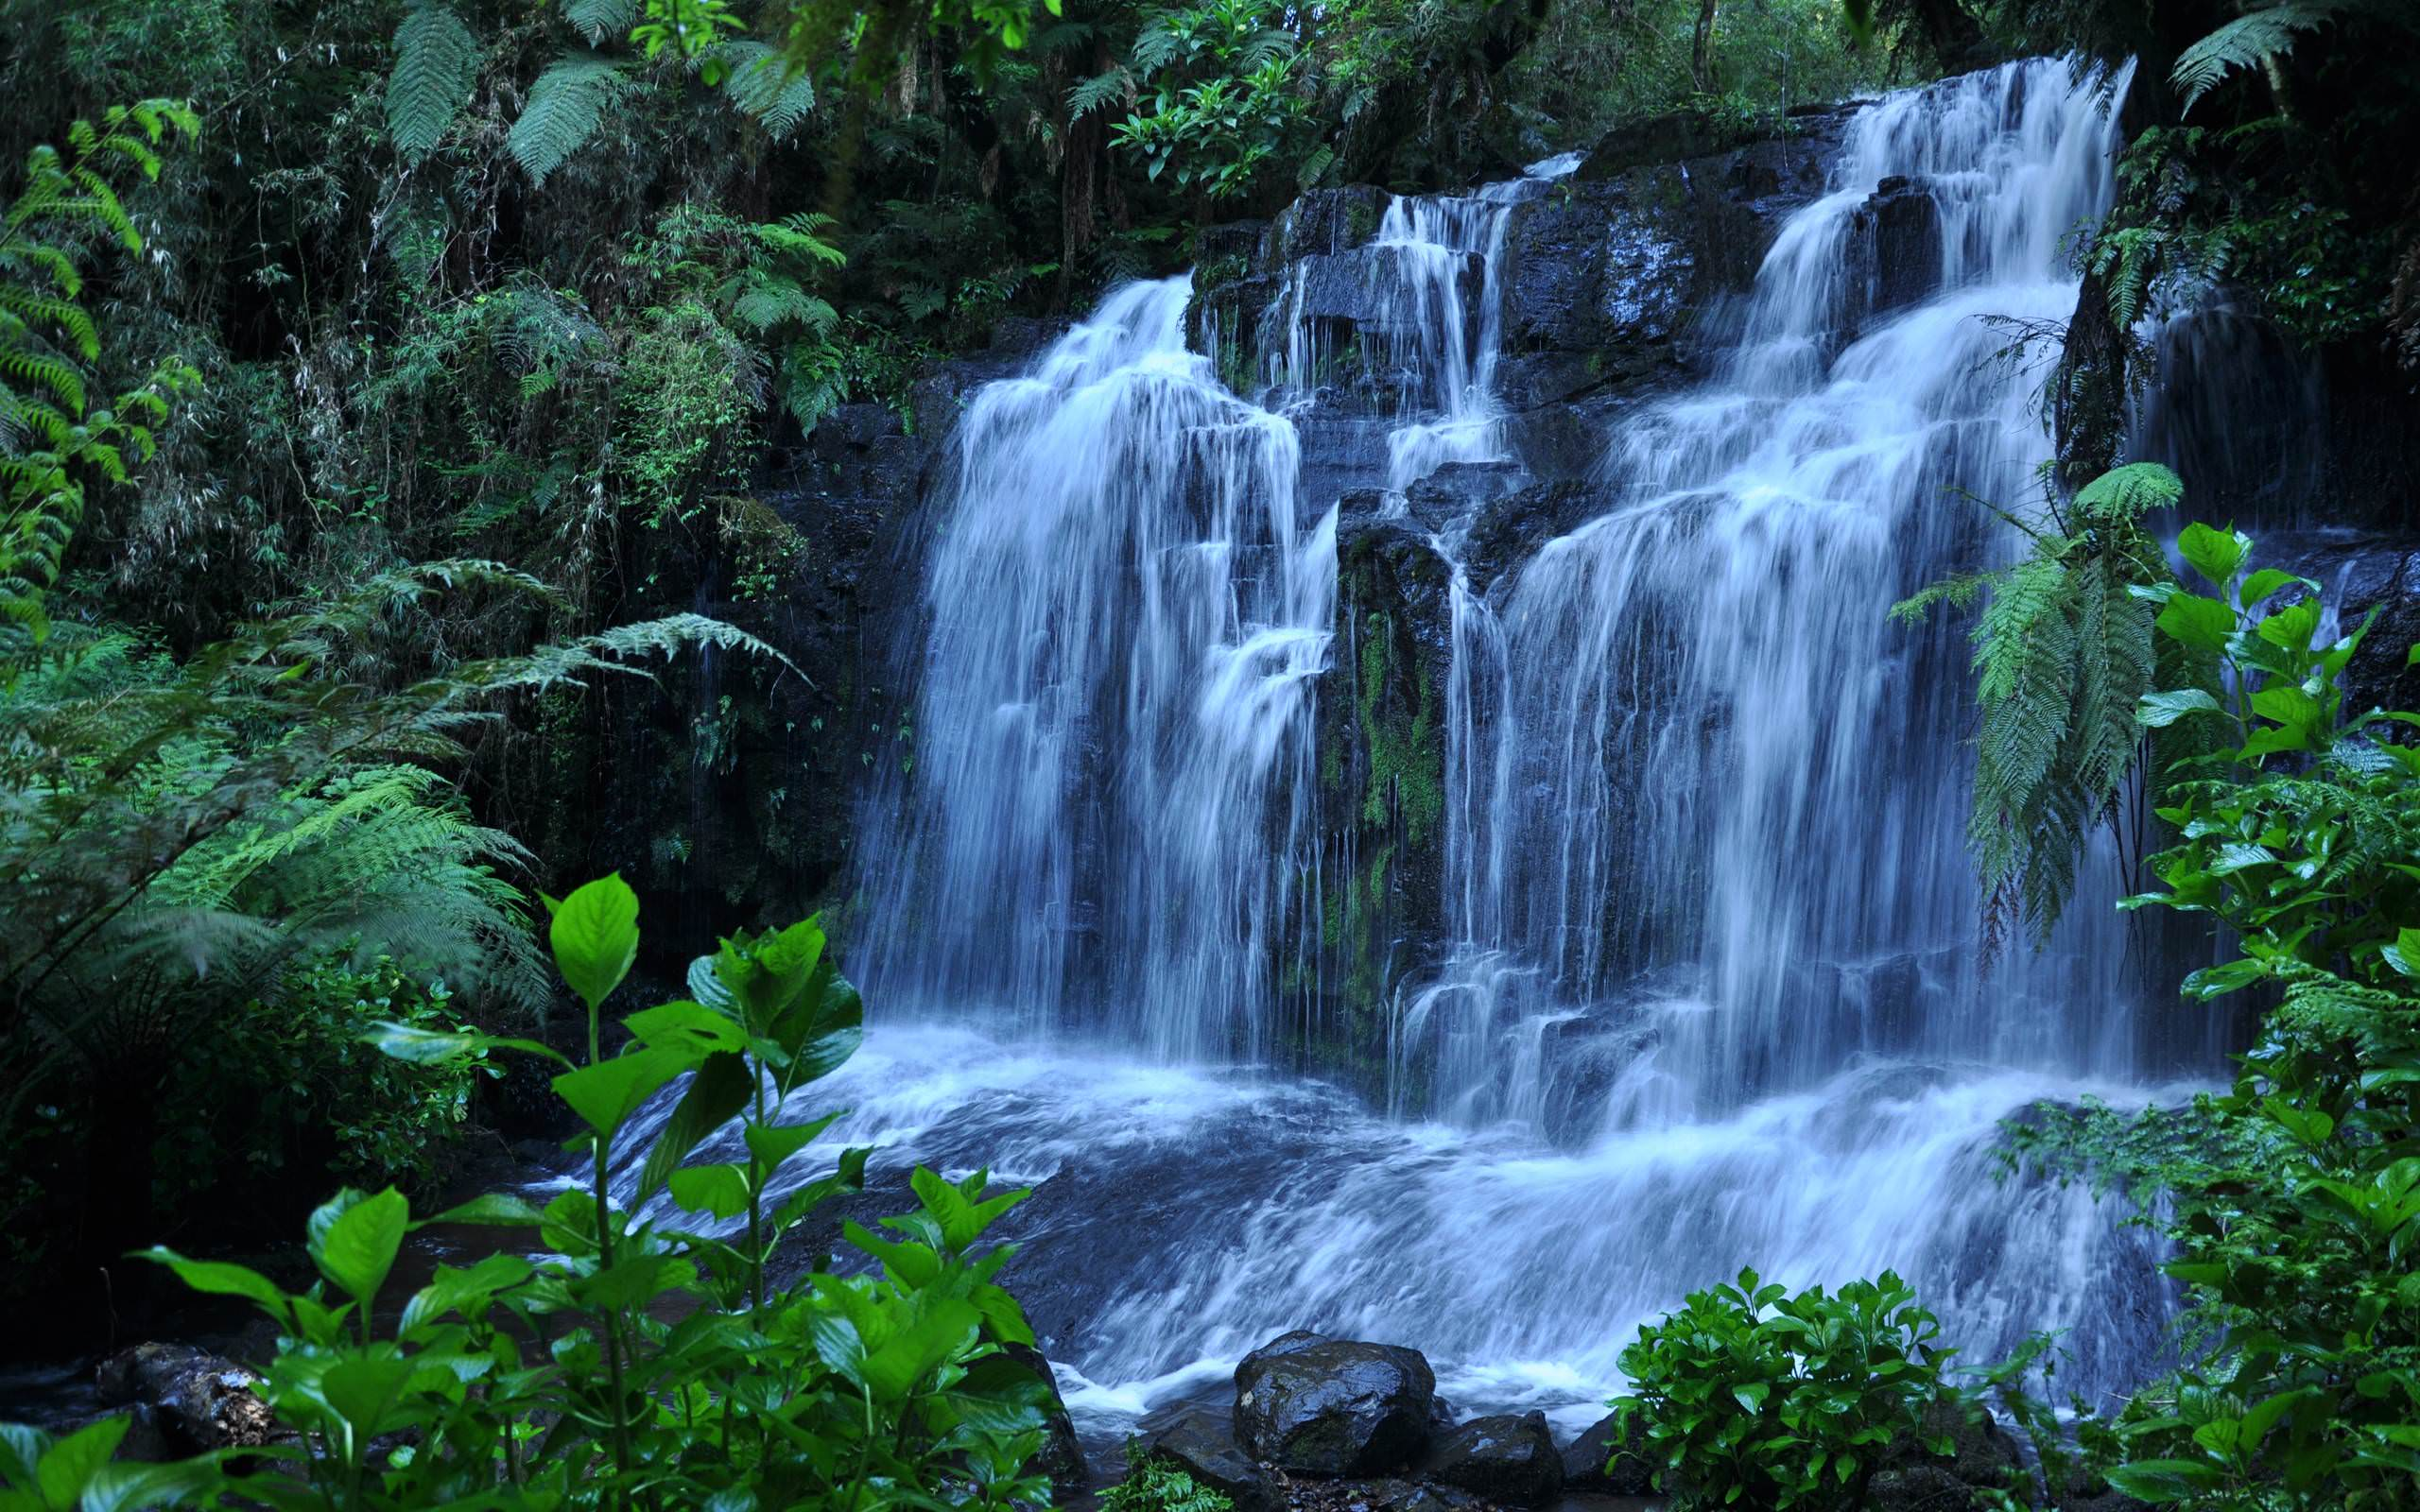 "1152x864 3D Moving Waterfall Desktop Backgrounds | ... Desktop Wallpapers: 3d ..."">"